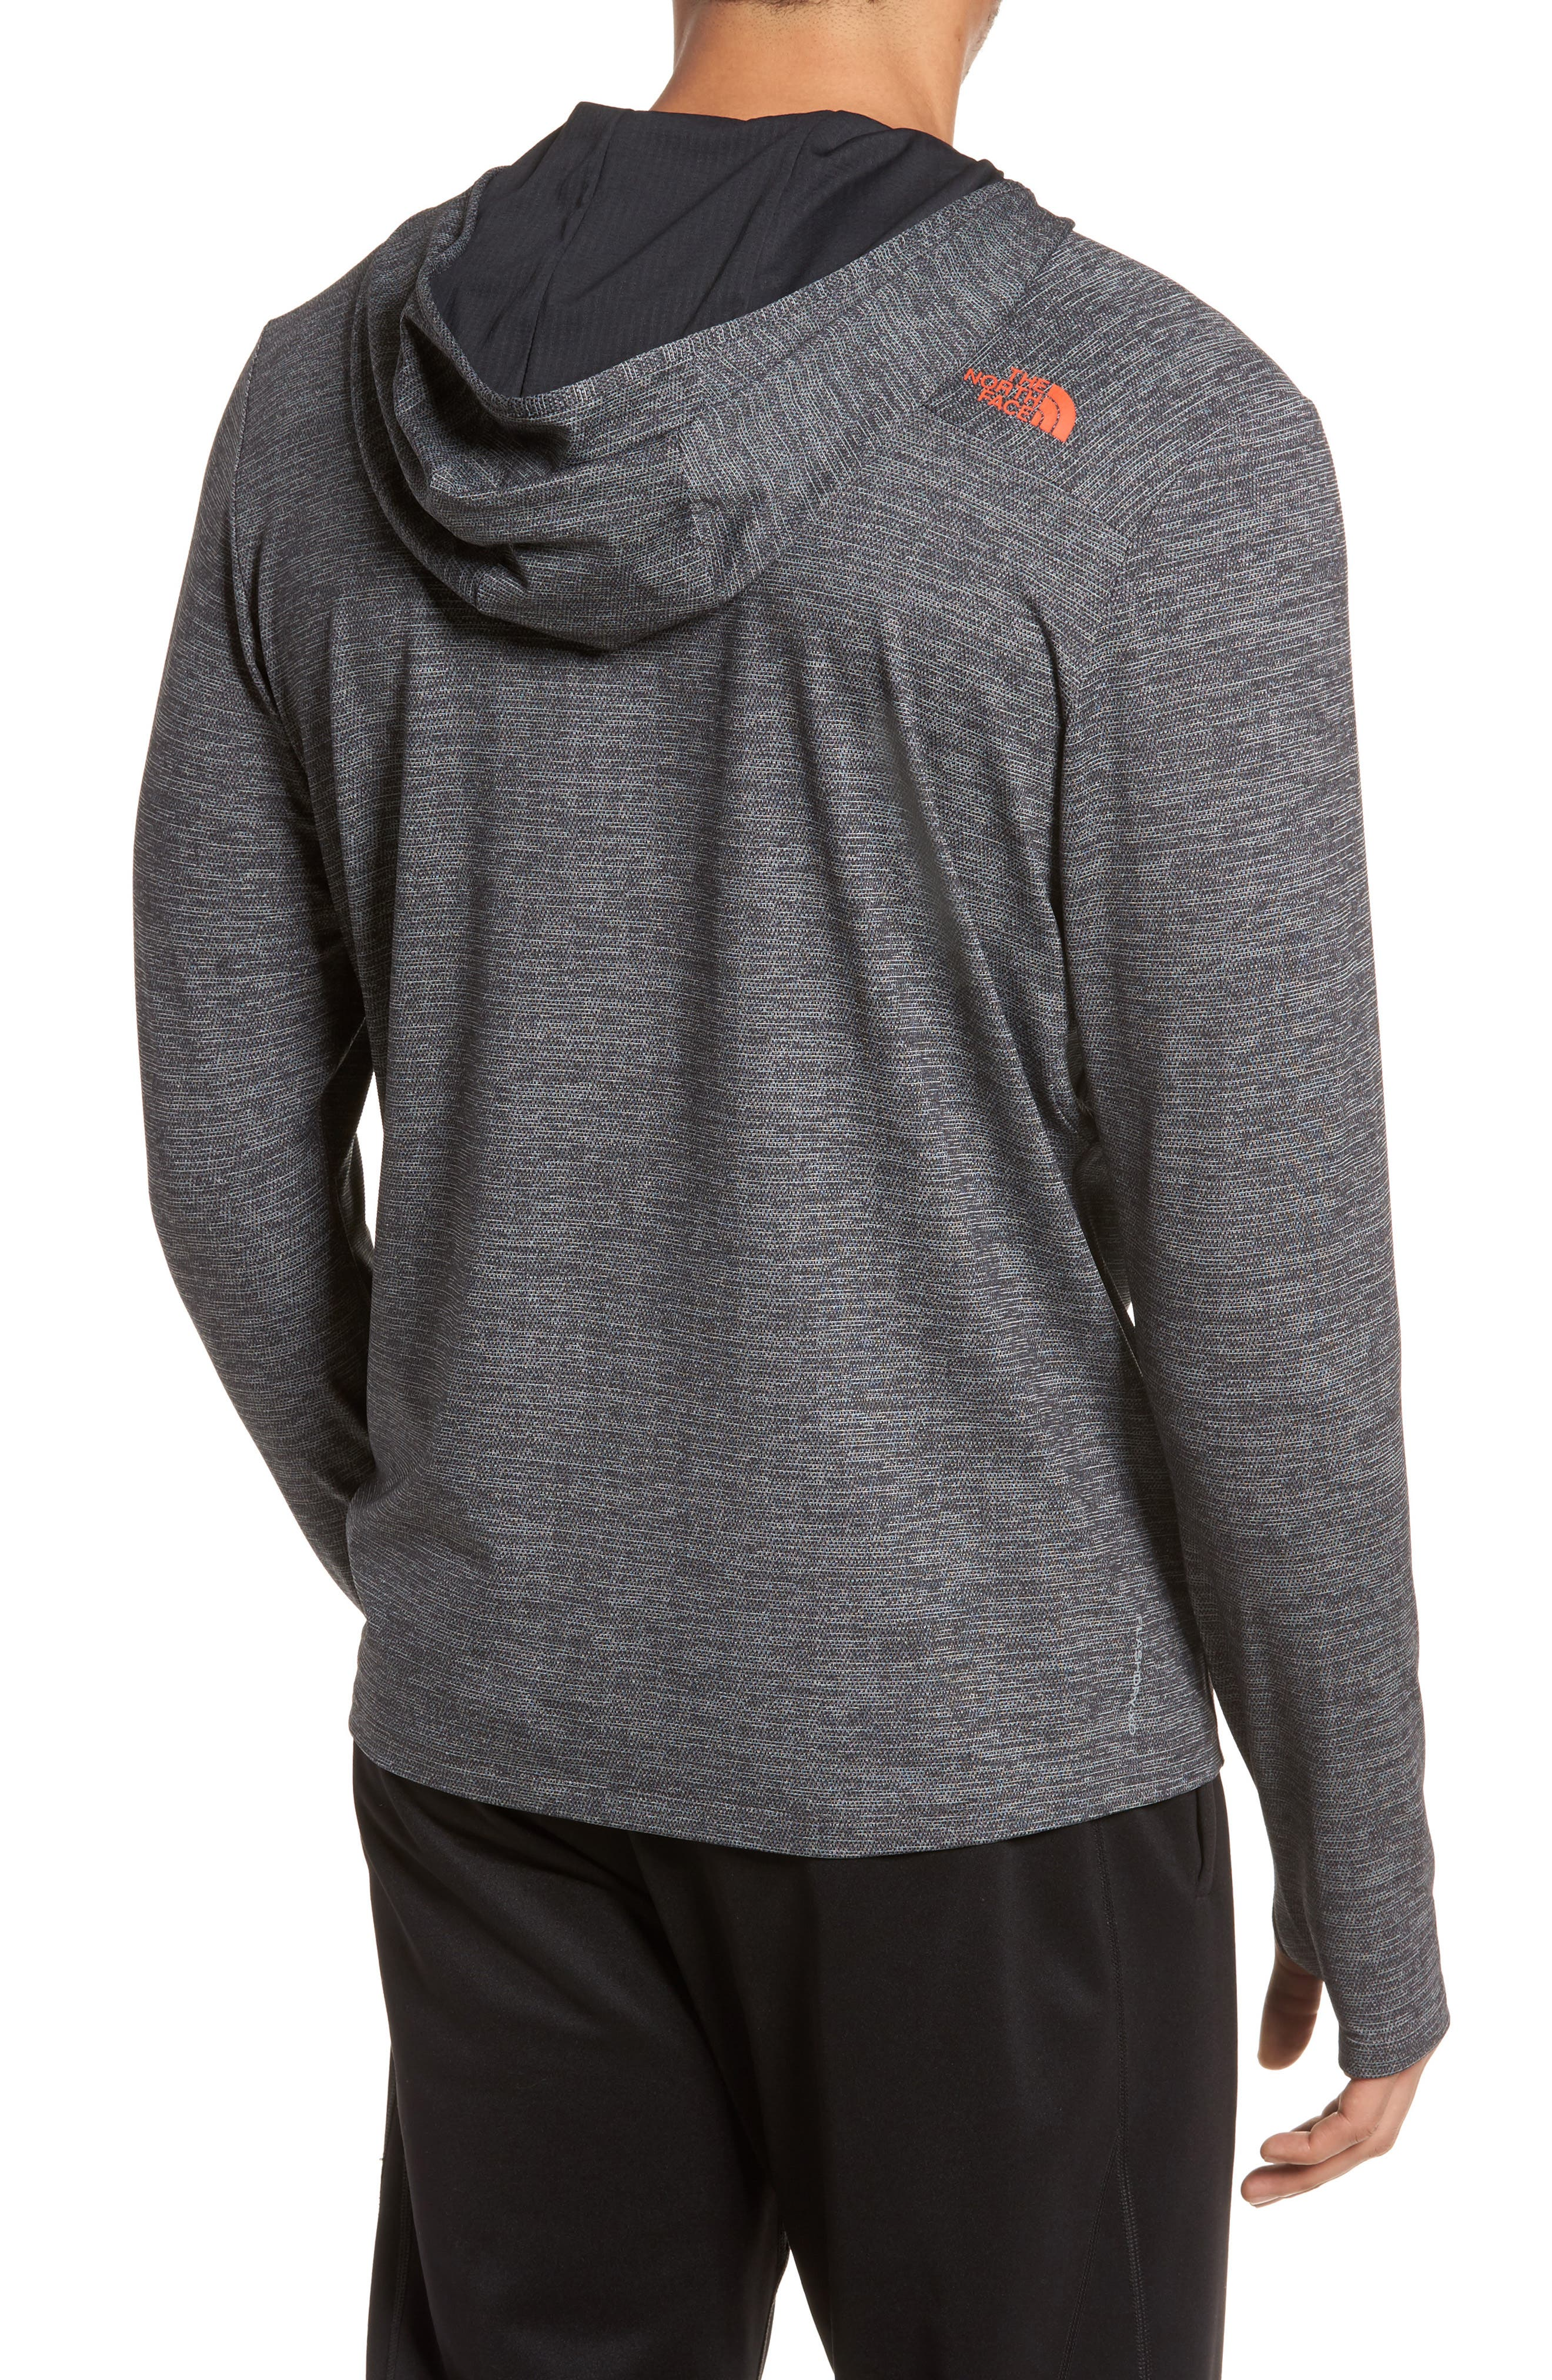 THE NORTH FACE,                             Beyond The Wall Hoodie,                             Alternate thumbnail 2, color,                             001